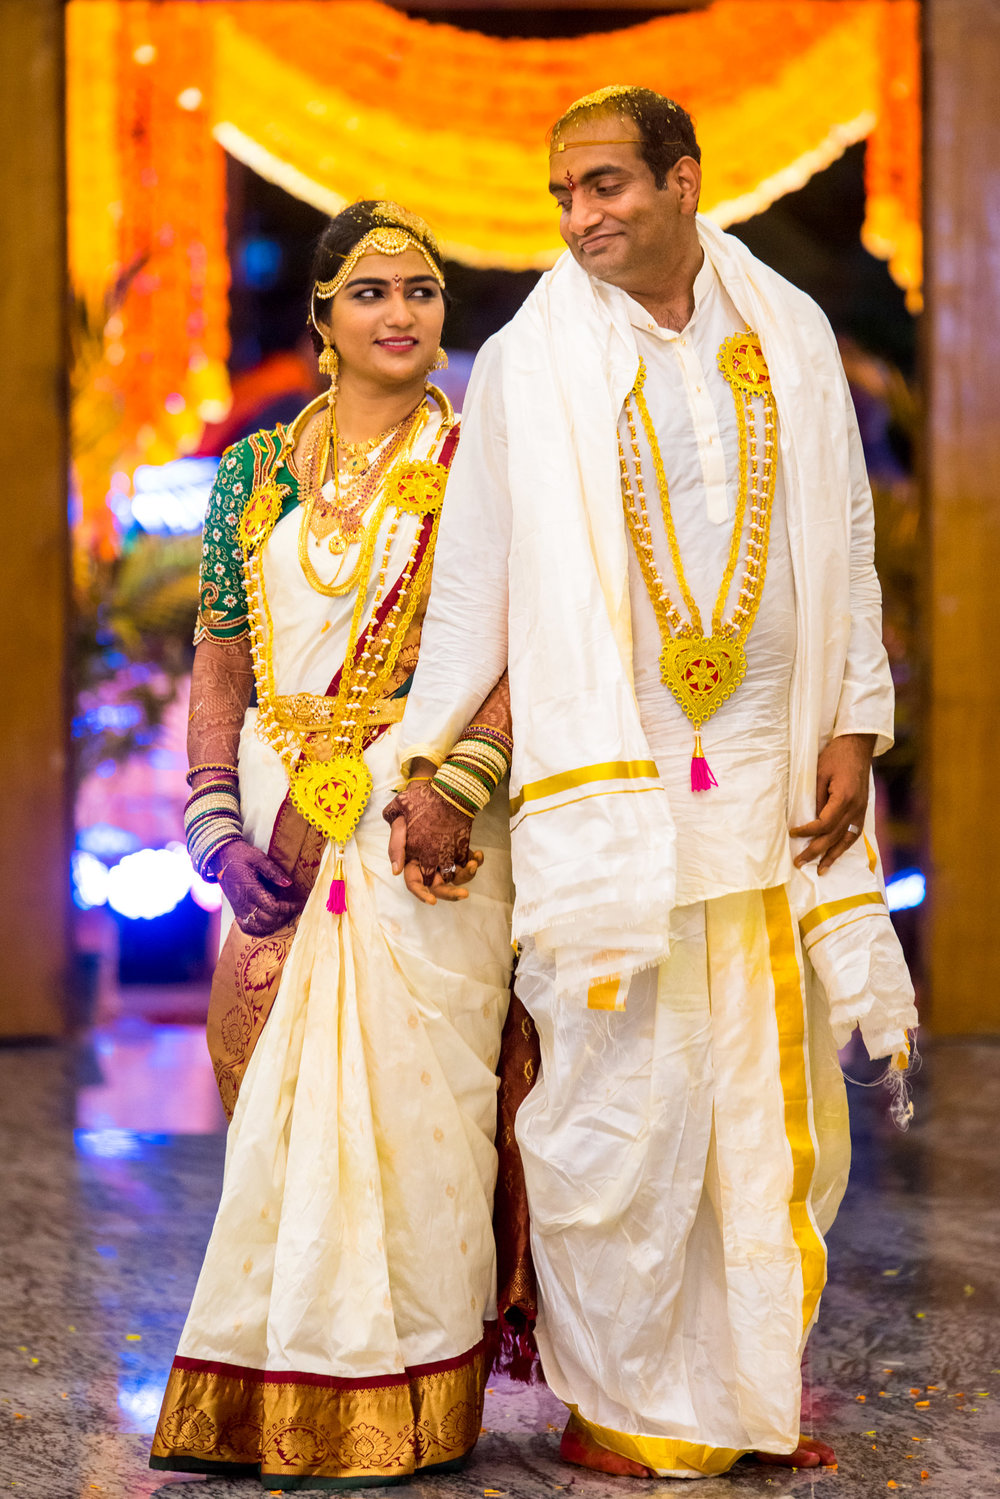 cover-hyderabad-wedding-1-9.jpg